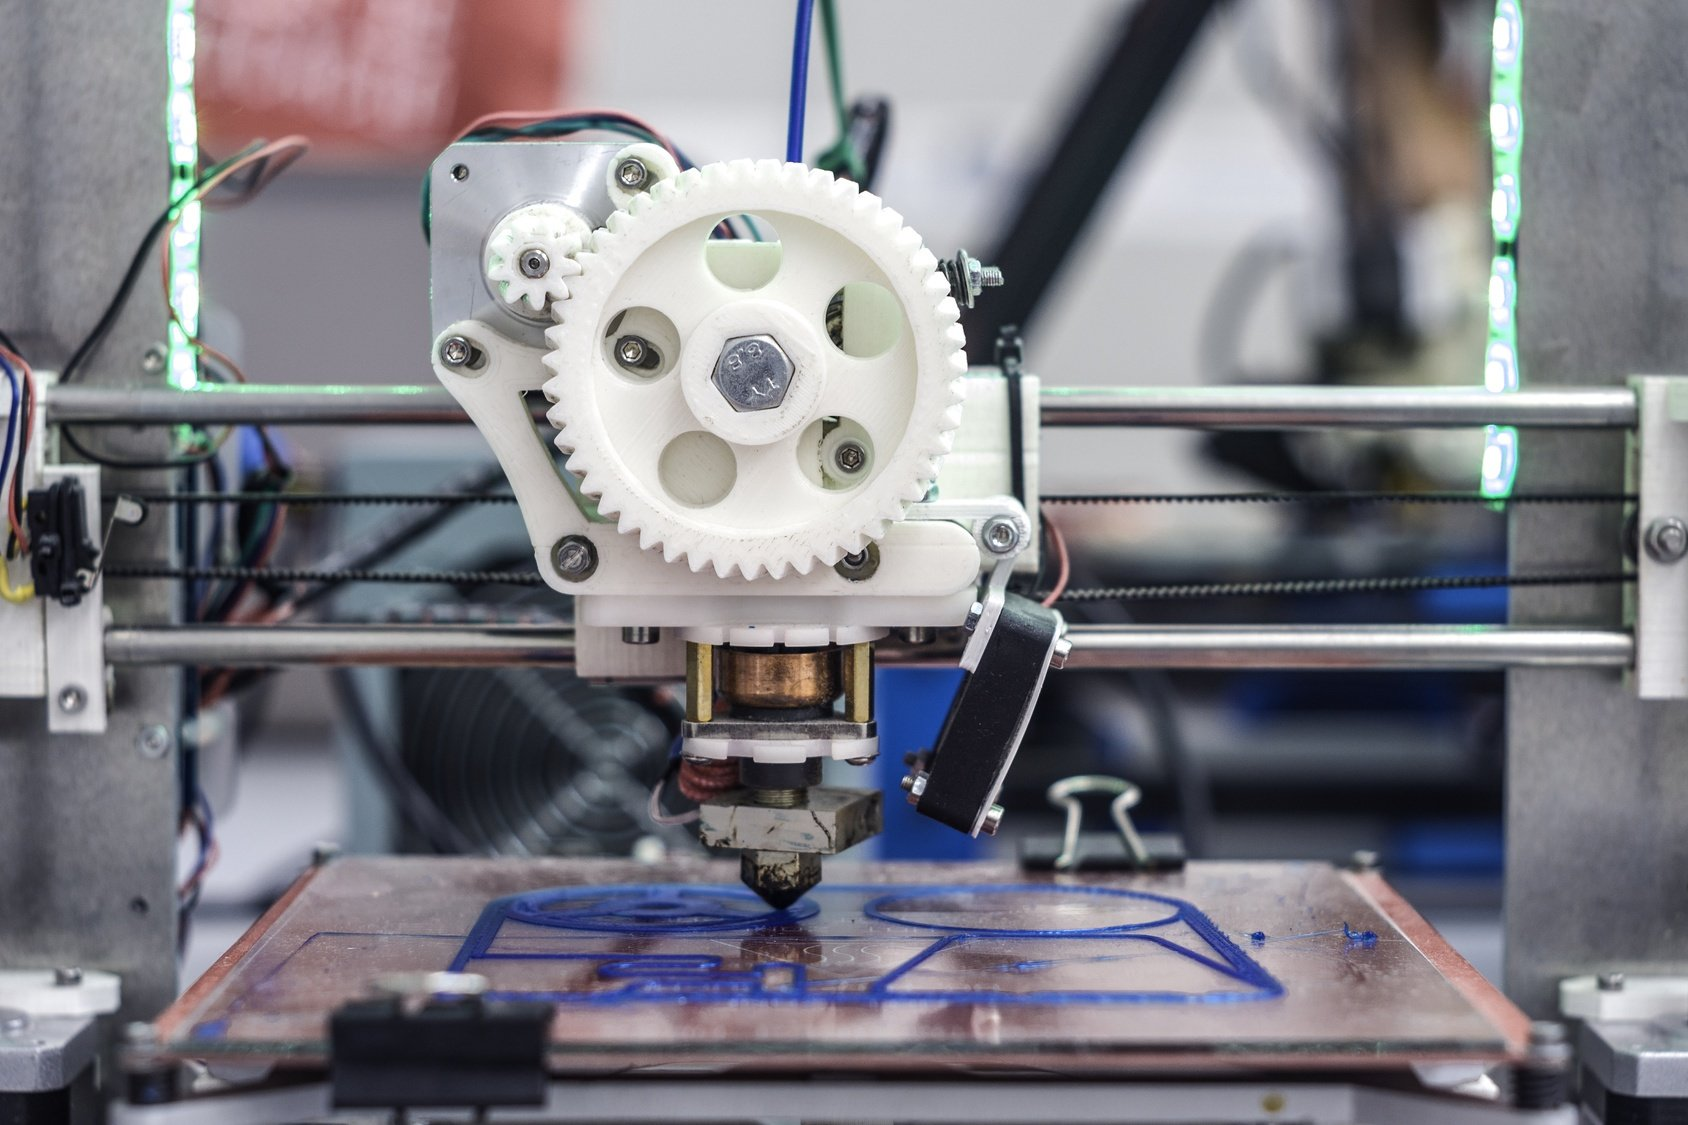 Marlin's 3D printer can manufacture a wide variety of objects on a moment's notice.